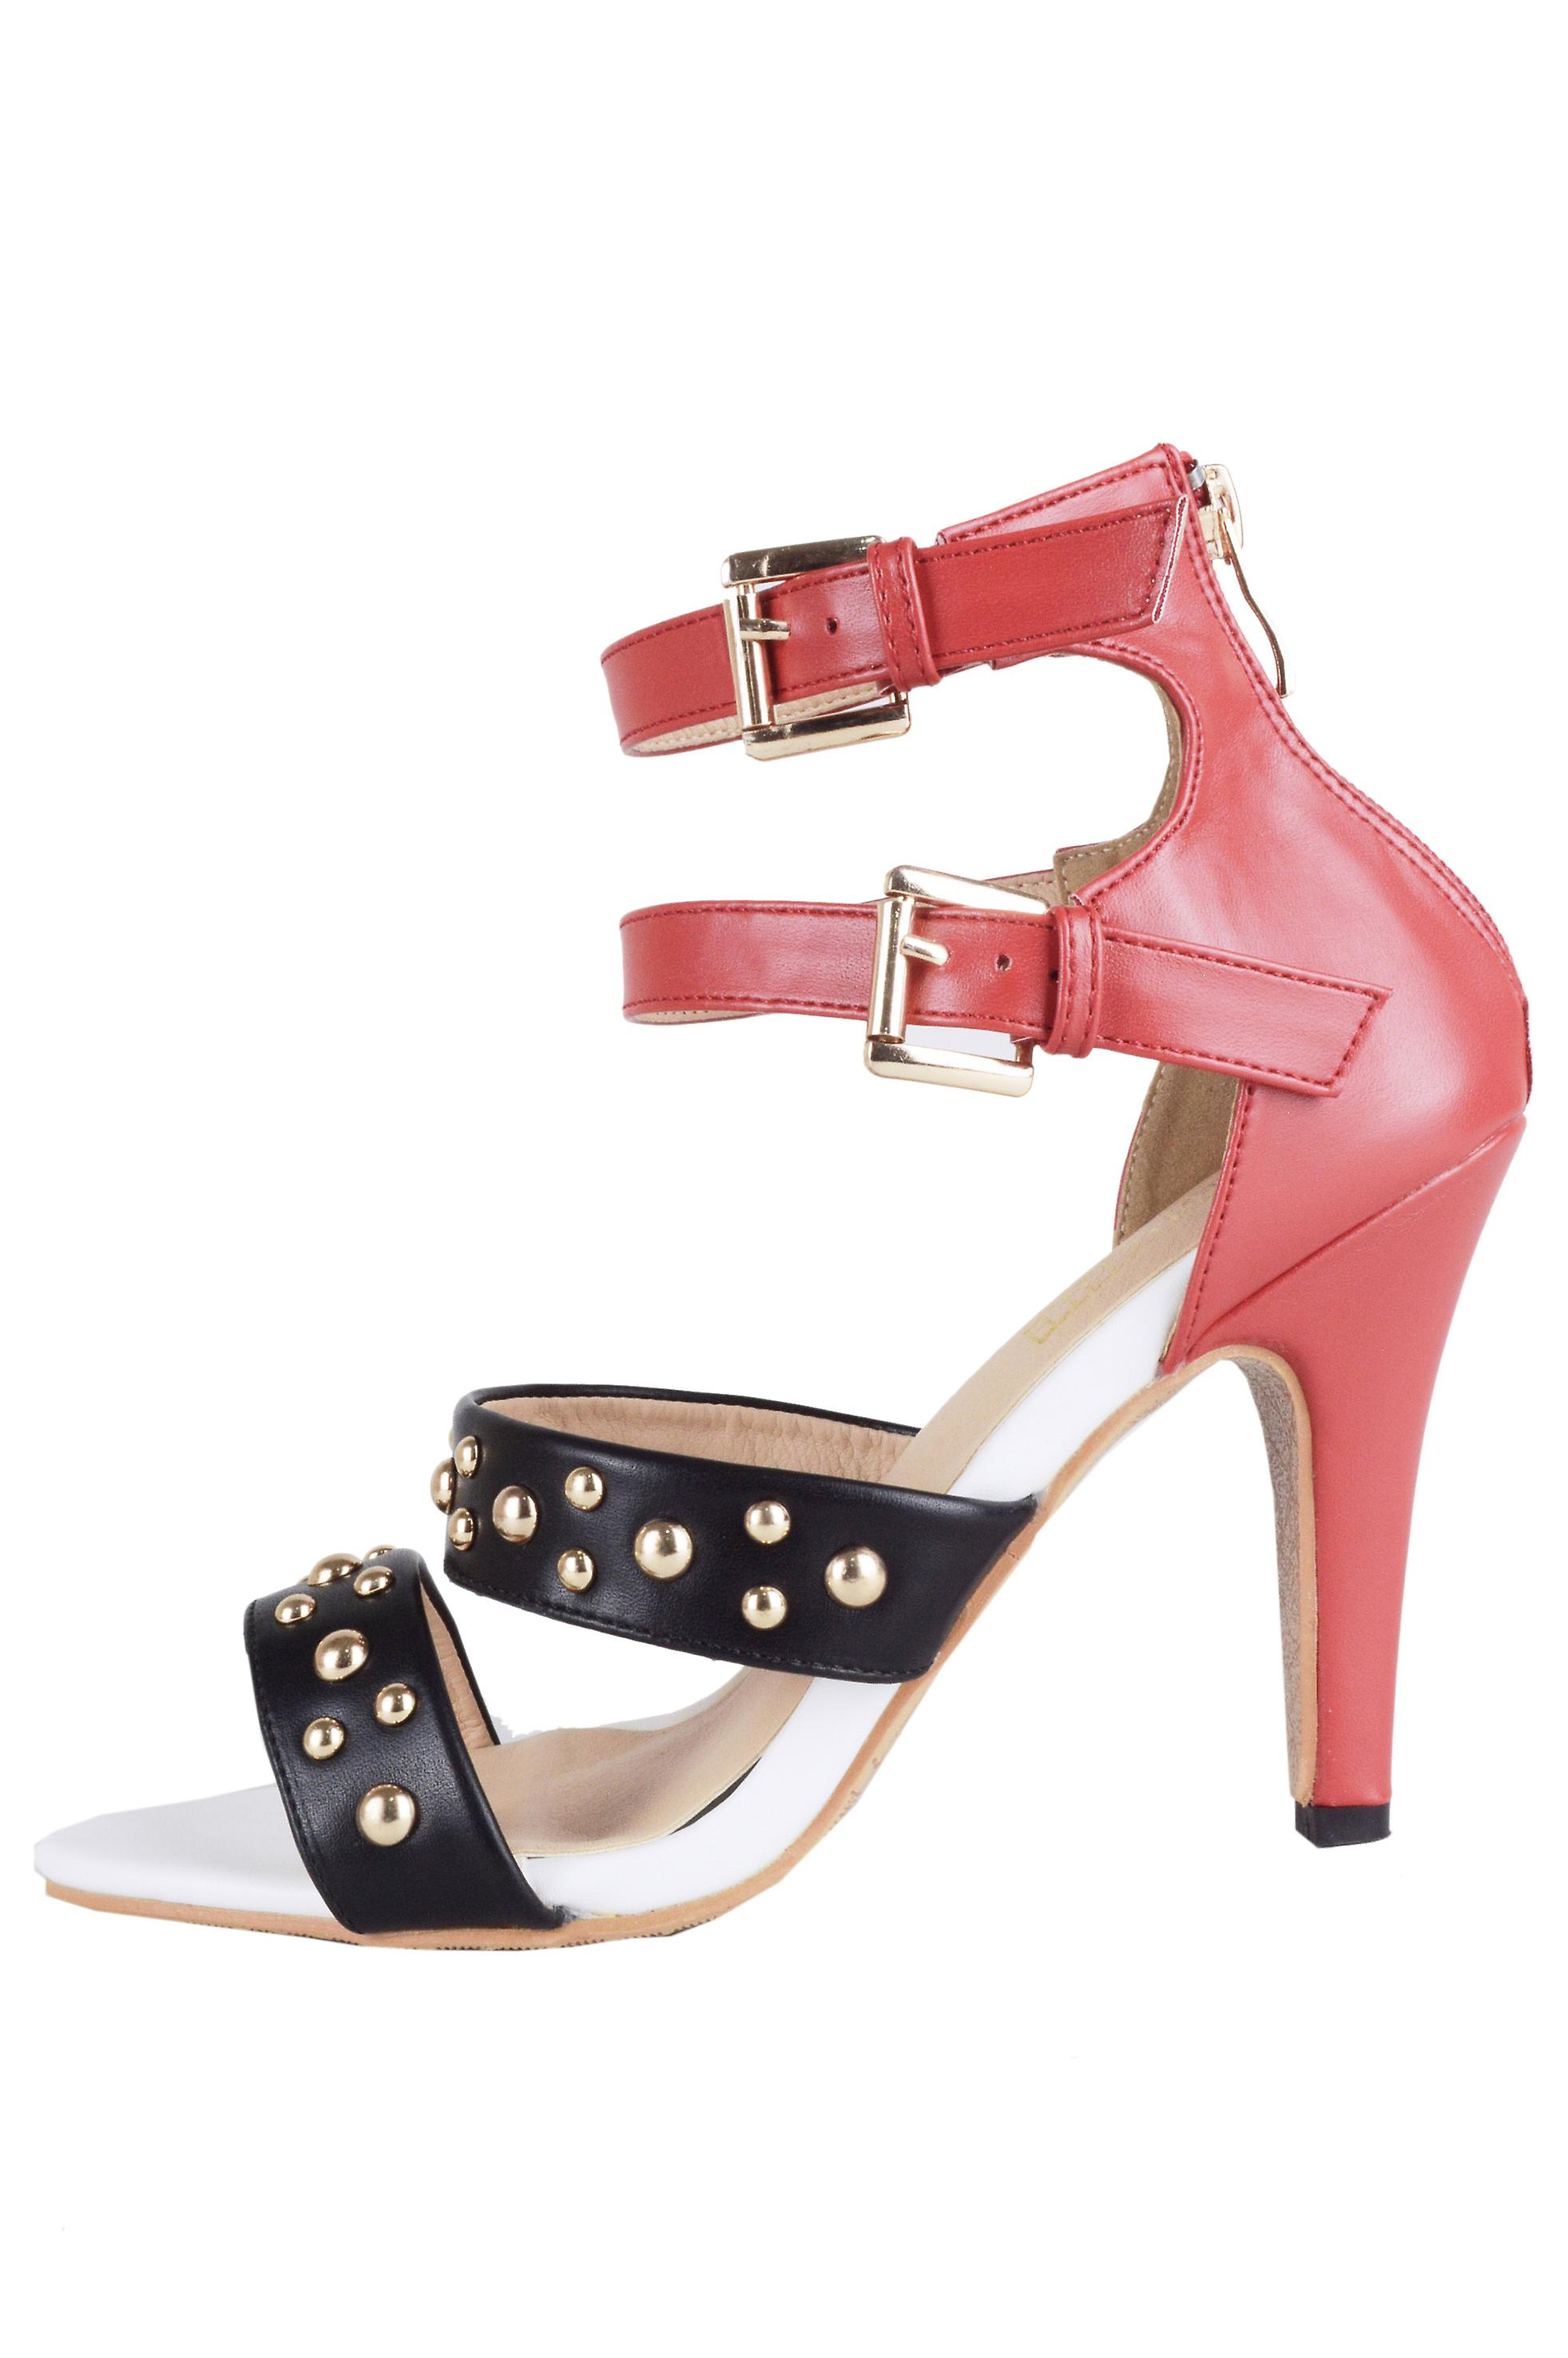 Lovemystyle Red, Black And White Studded High Heels